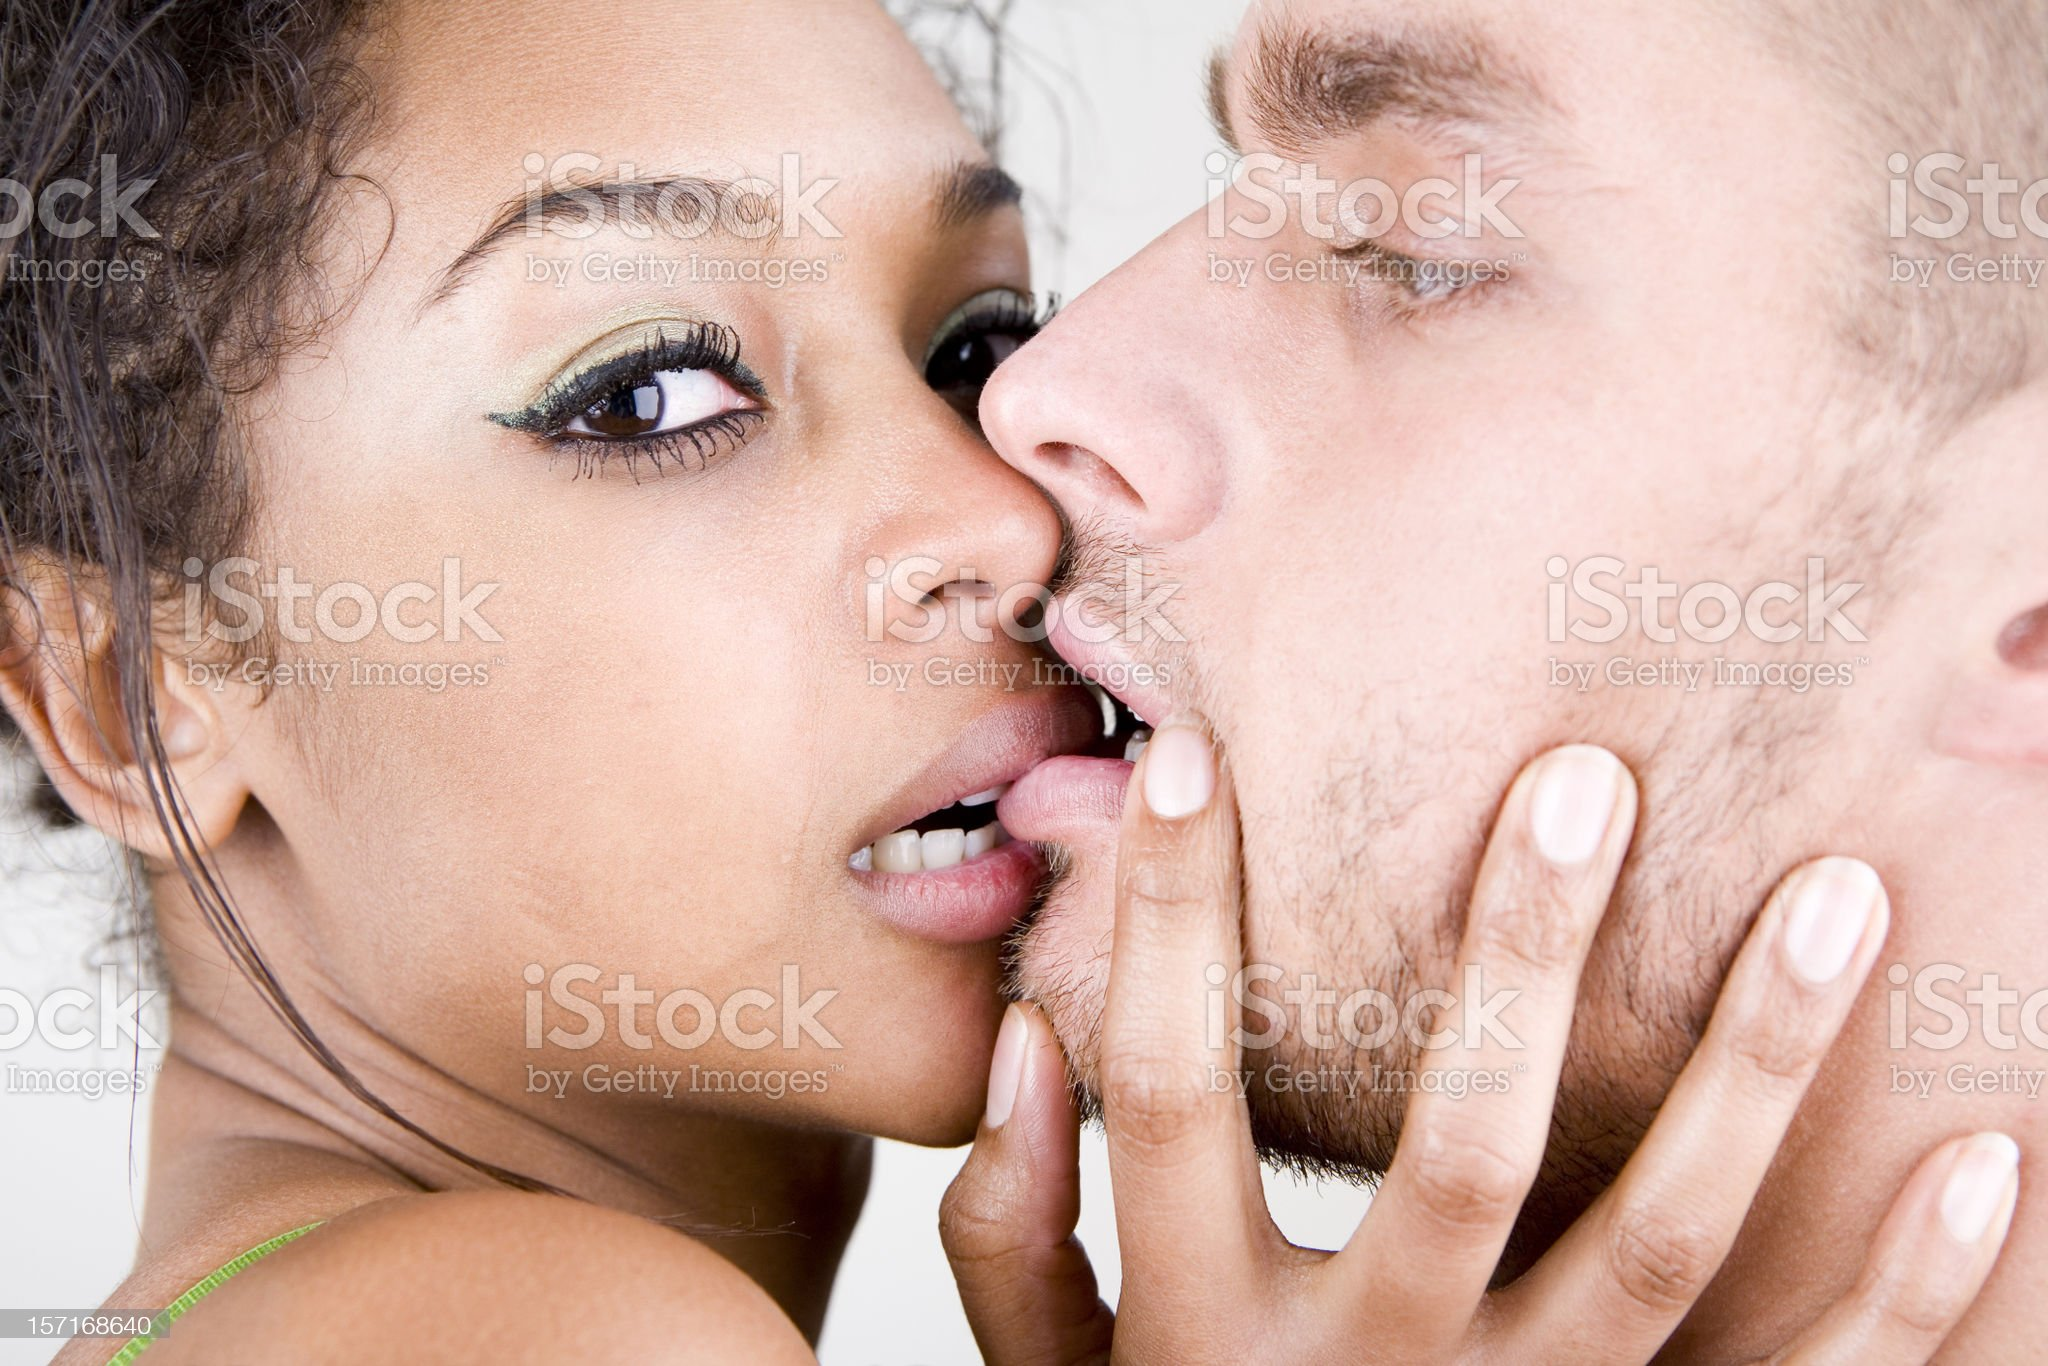 Passionate kiss between a pair of young lovers royalty-free stock photo